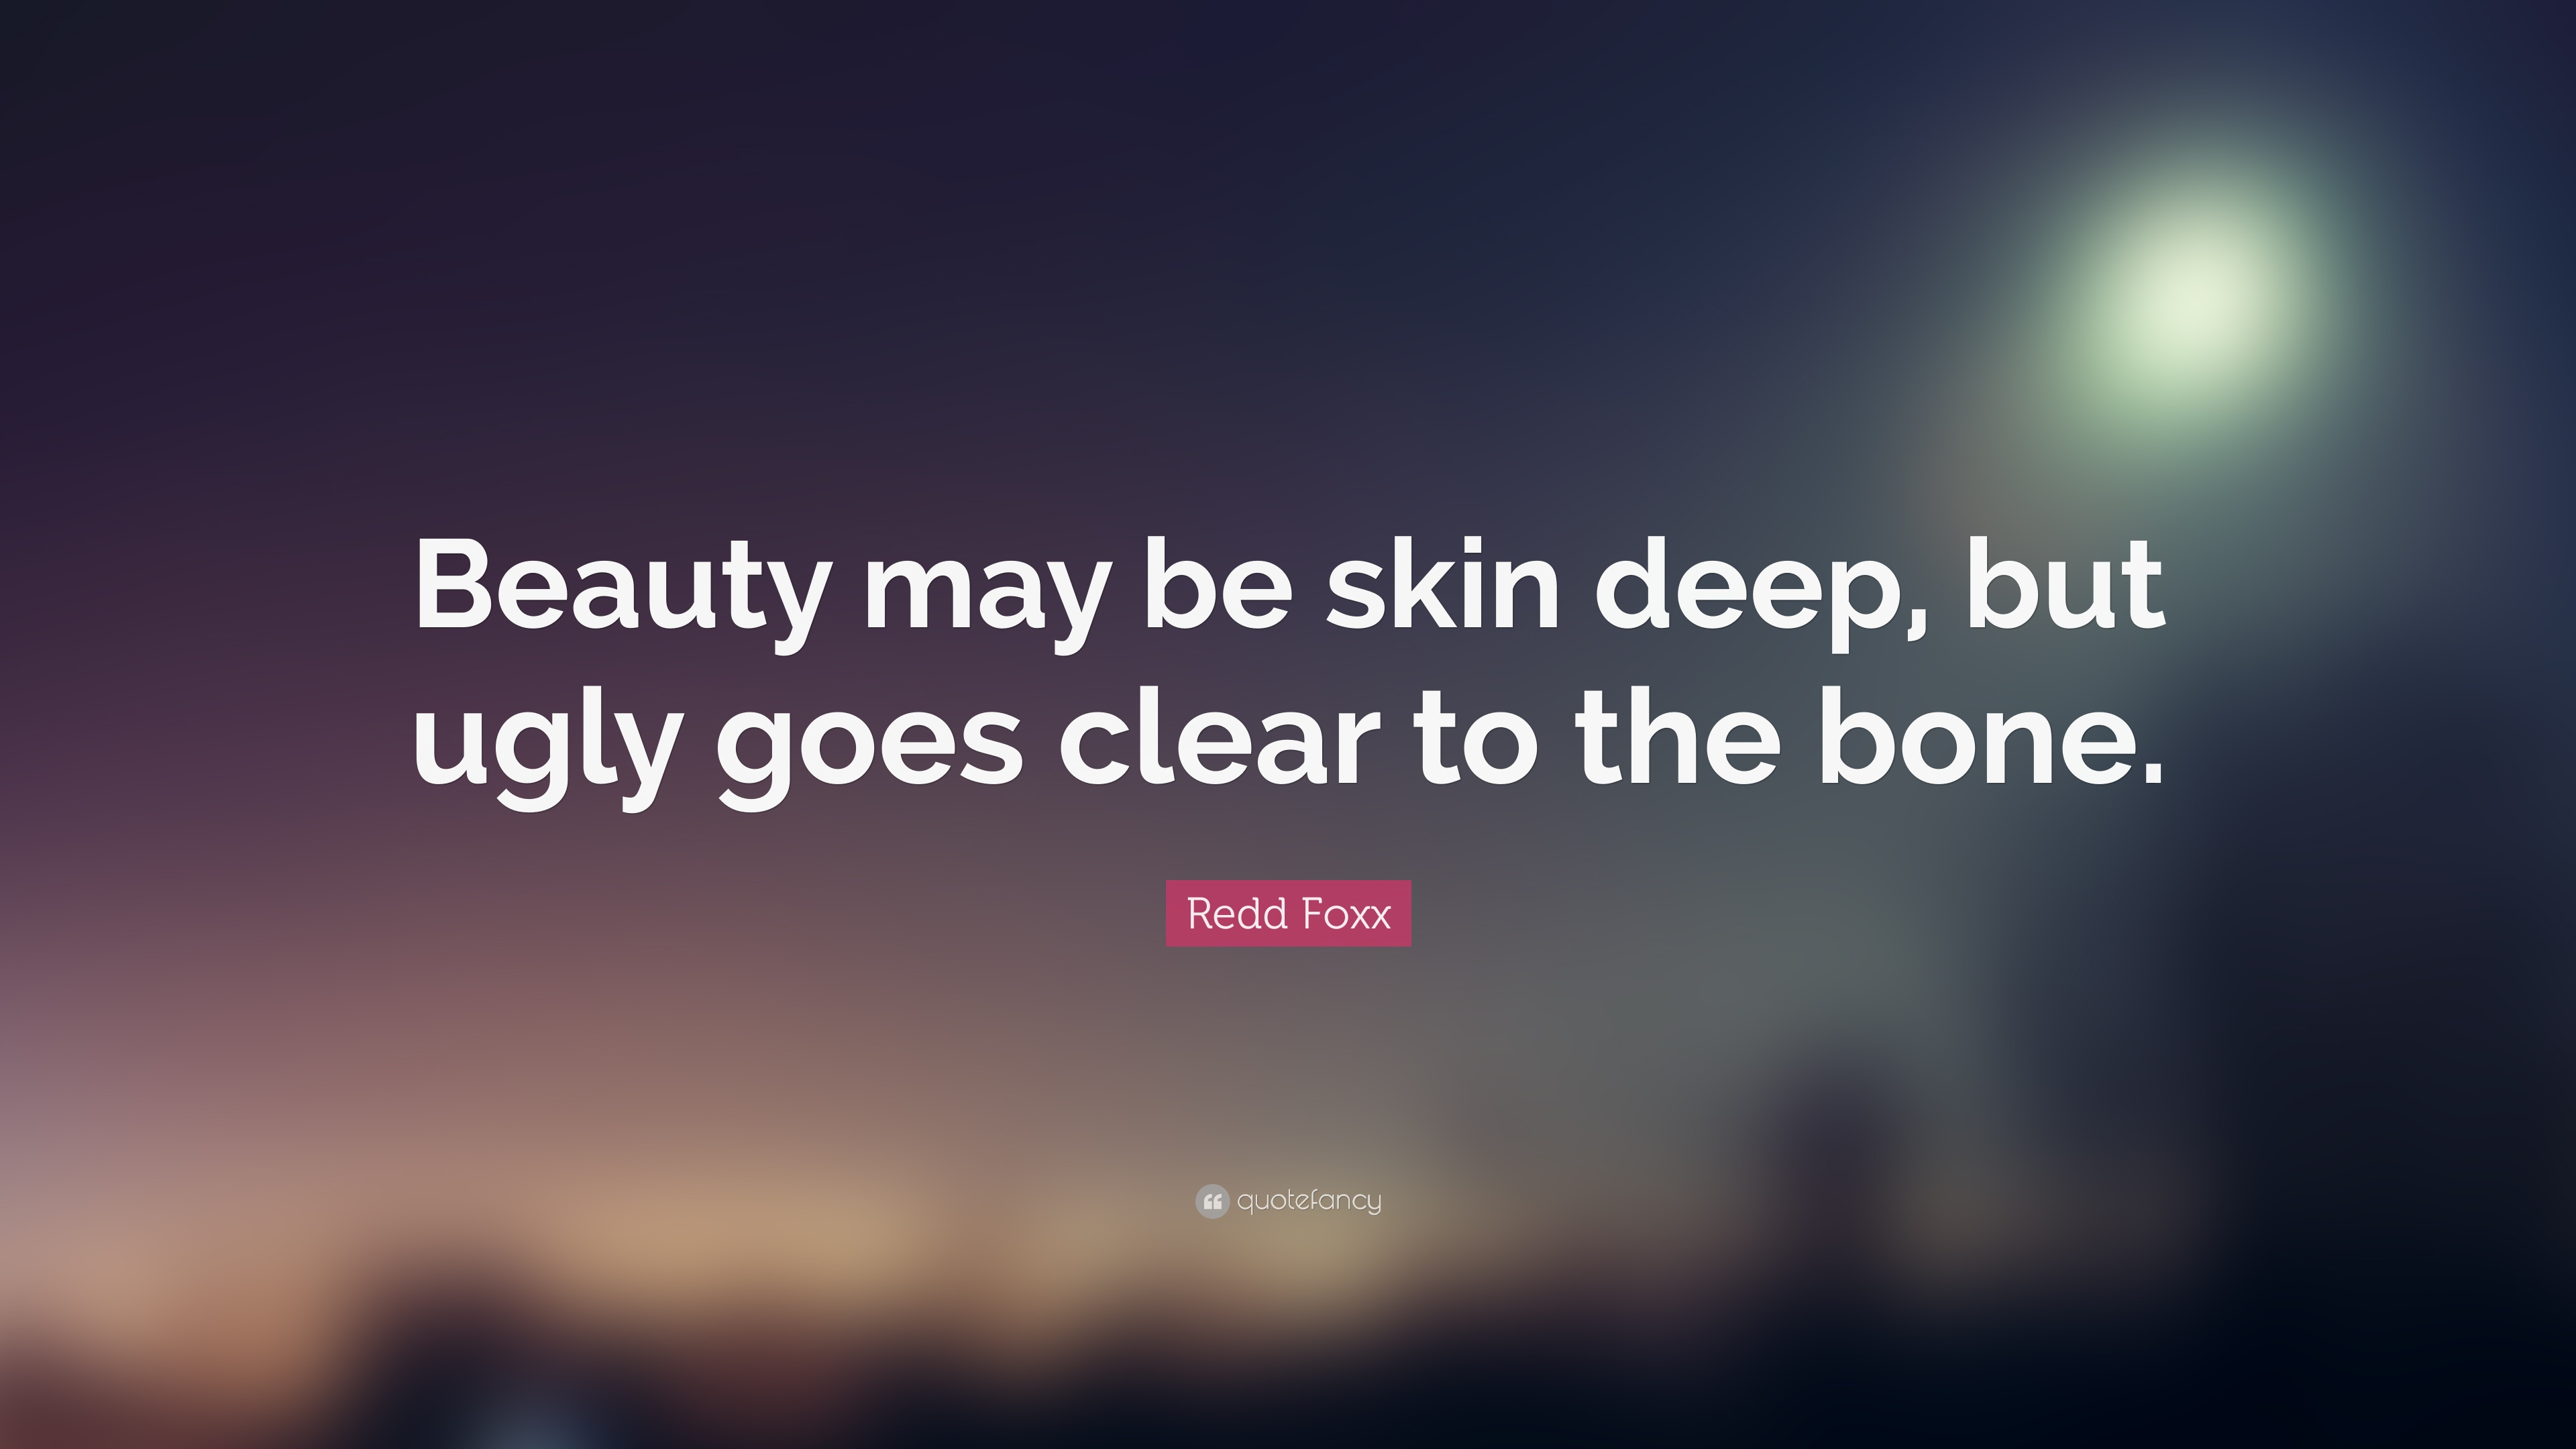 Redd Foxx Quote Beauty May Be Skin Deep But Ugly Goes Clear To